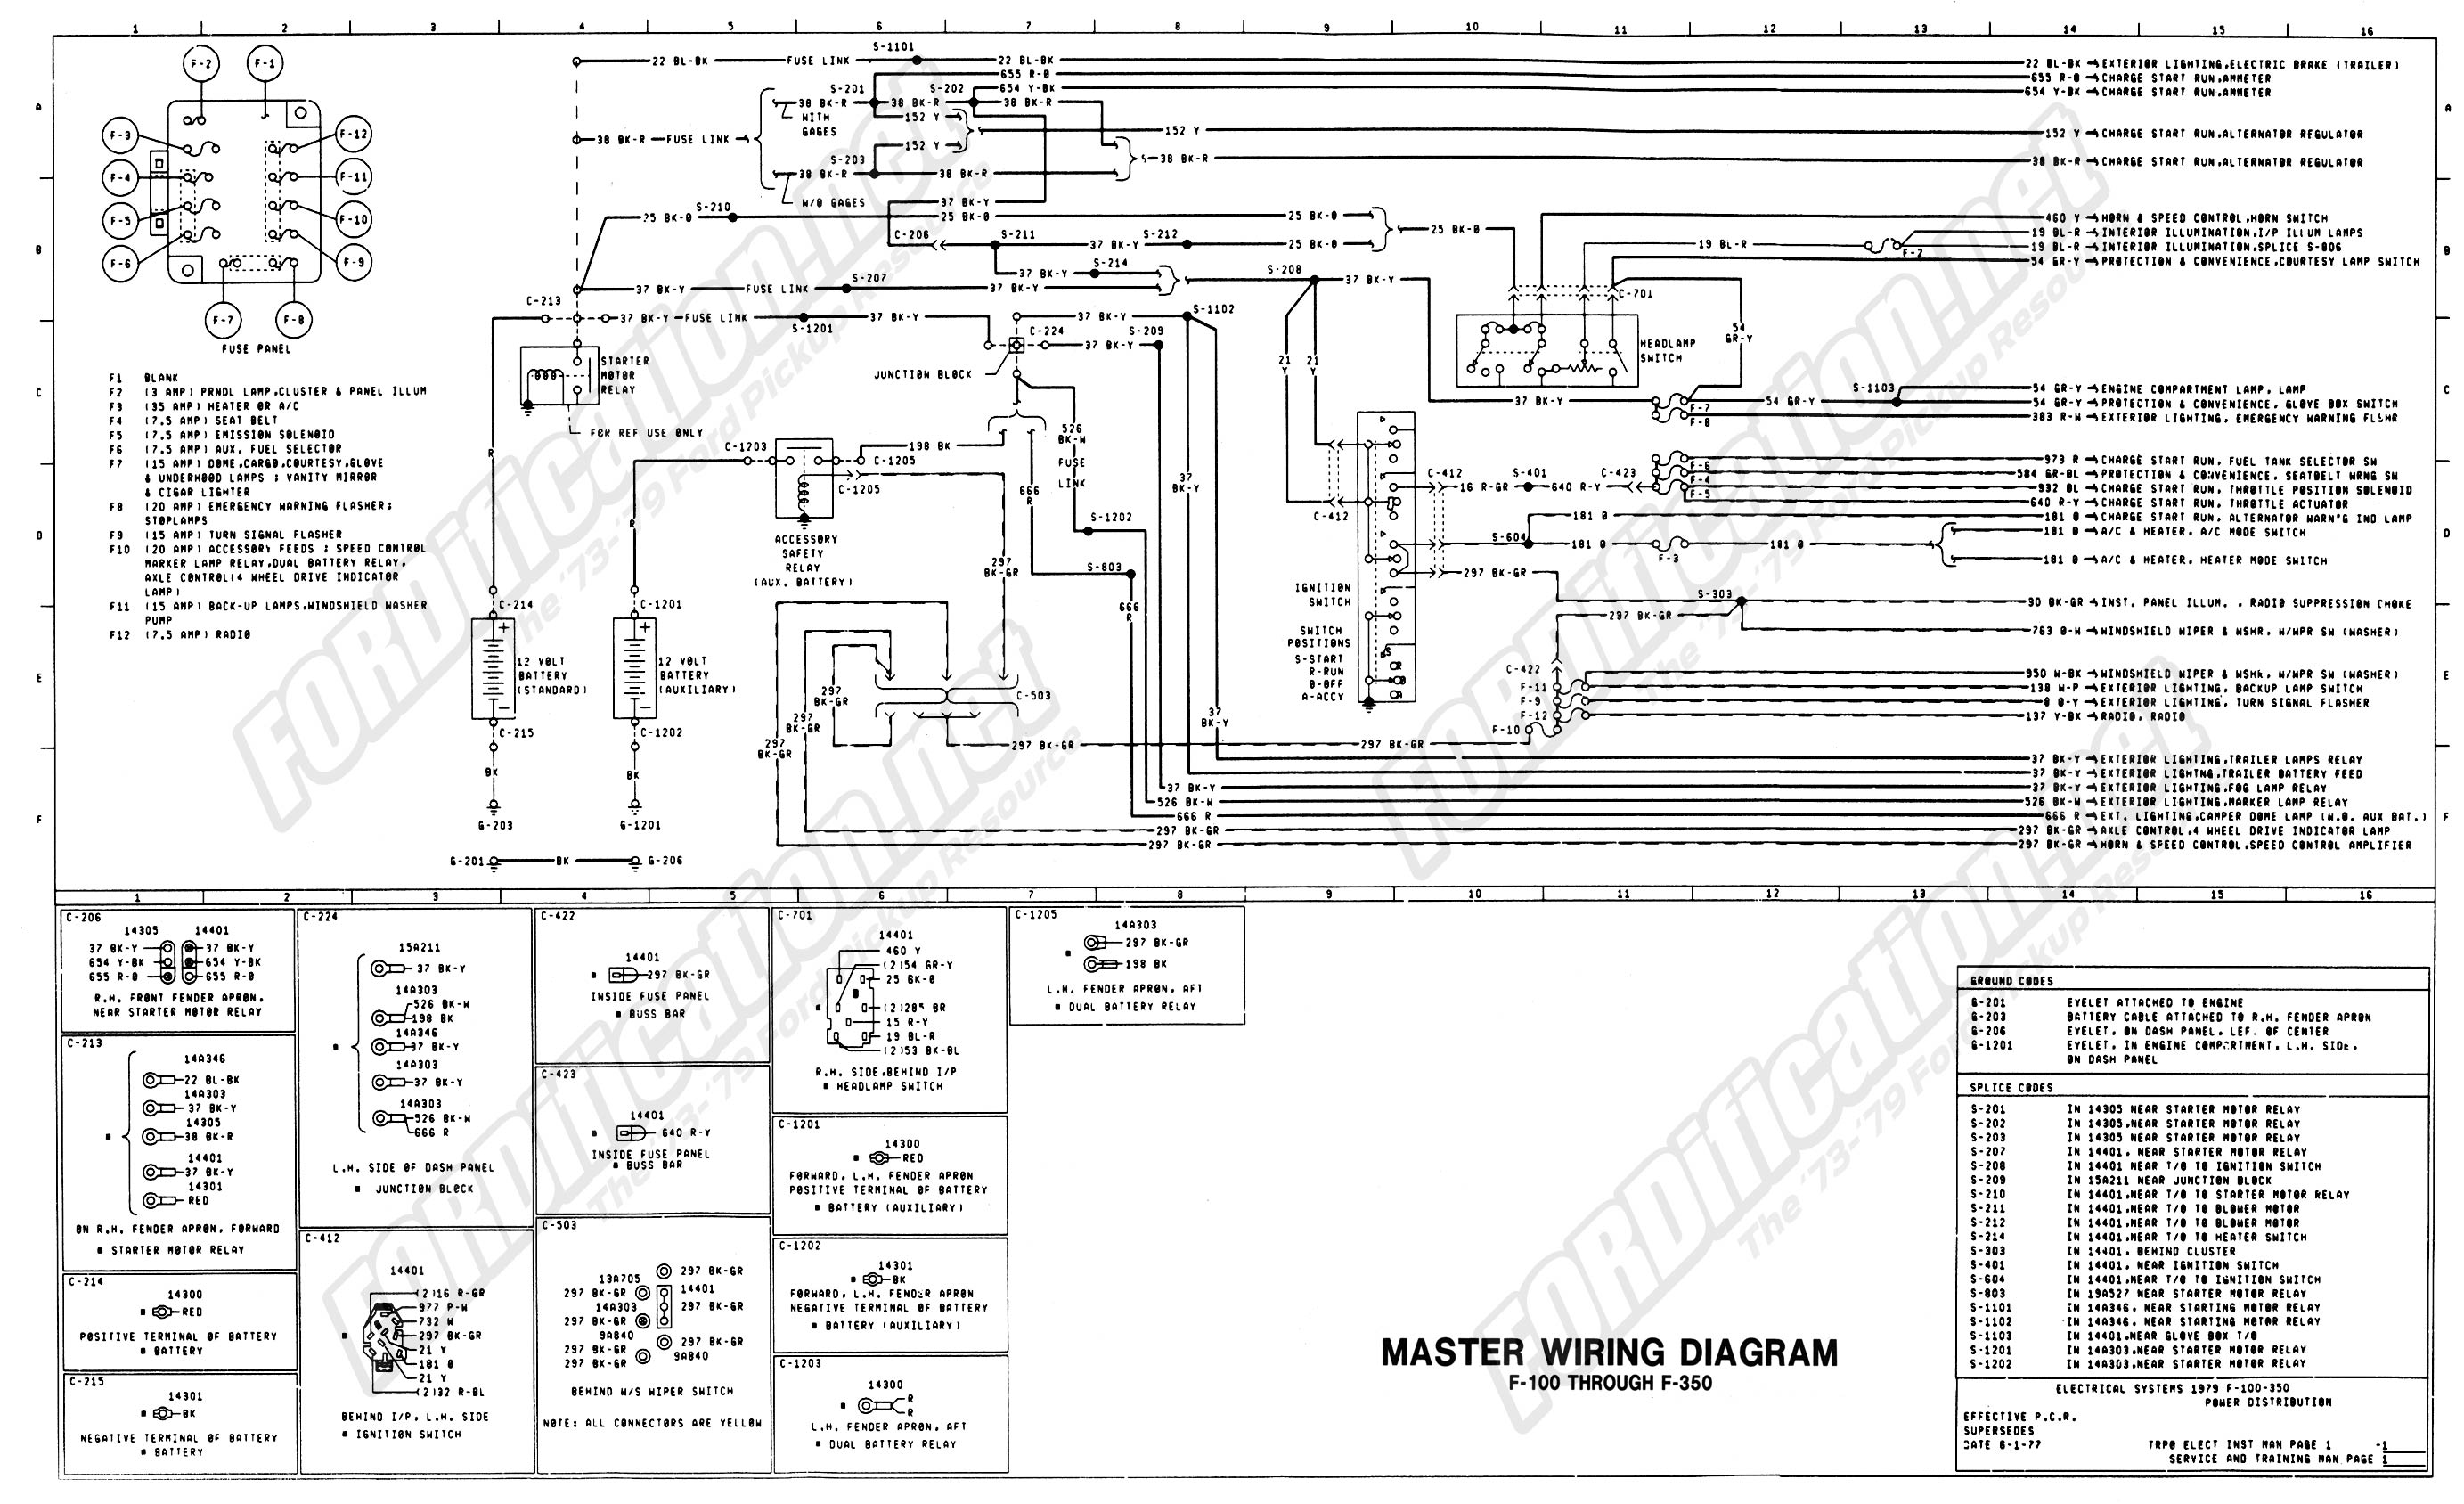 wiring_79master_1of9 1973 1979 ford truck wiring diagrams & schematics fordification net 1979 ford truck fuse box diagram at aneh.co